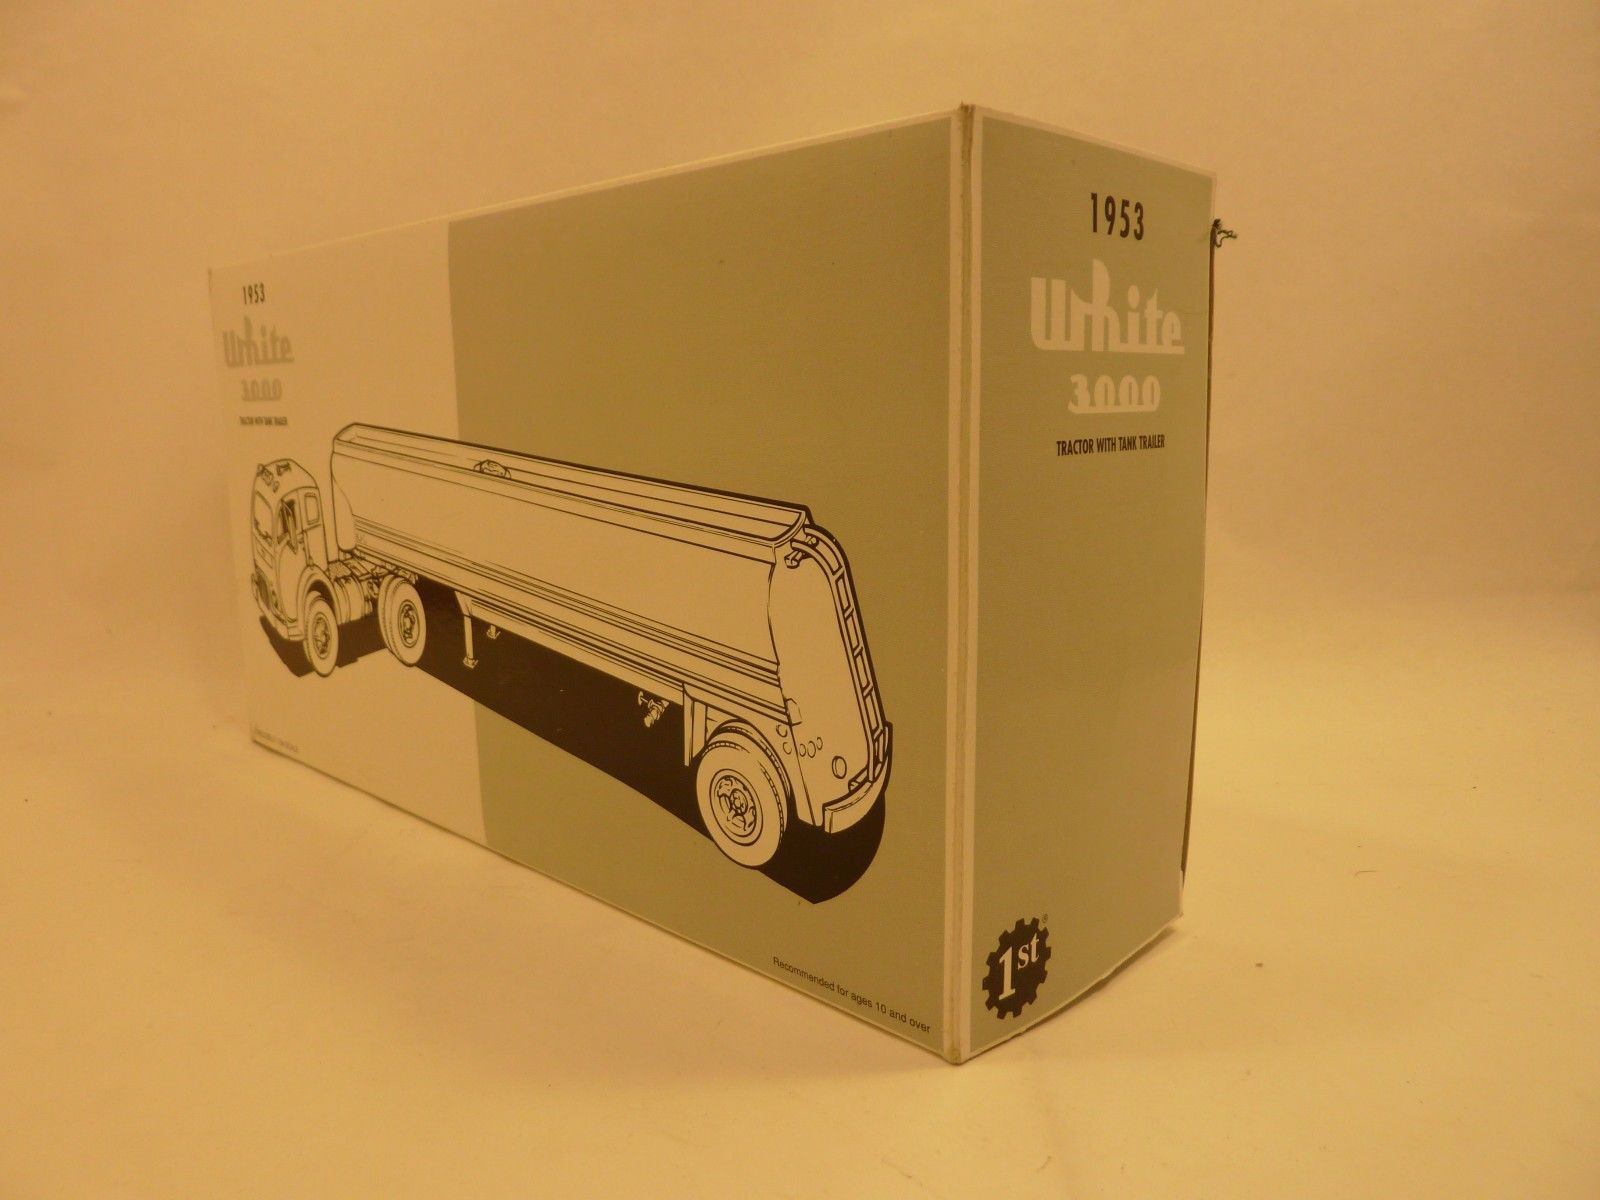 First Gear Mobil Oil 1953 White 3000 Tractor with Tank Trailer 1/34 Scale